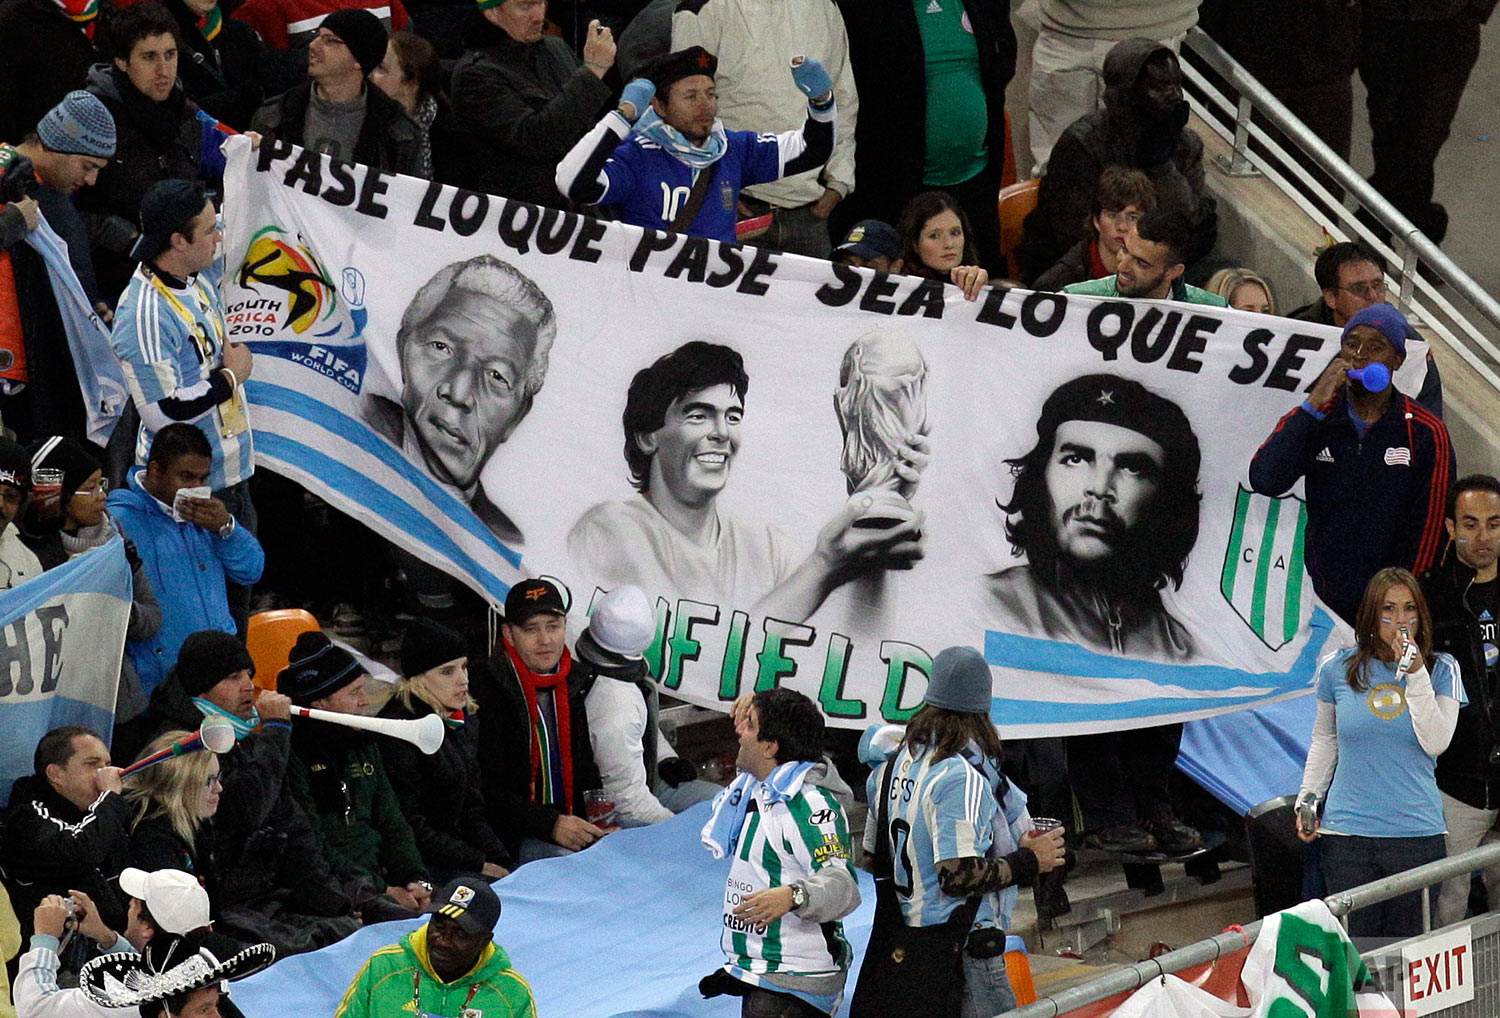 Argentina fans hold up a banner with images of former President Nelson Mandela, Diego Maradona and Che Guevara during the World Cup round of 16 soccer match between Argentina and Mexico at Soccer City in Johannesburg, South Africa, Sunday, June 27, 2010. Argentina won 3-1. (AP Photo/Themba Hadebe)